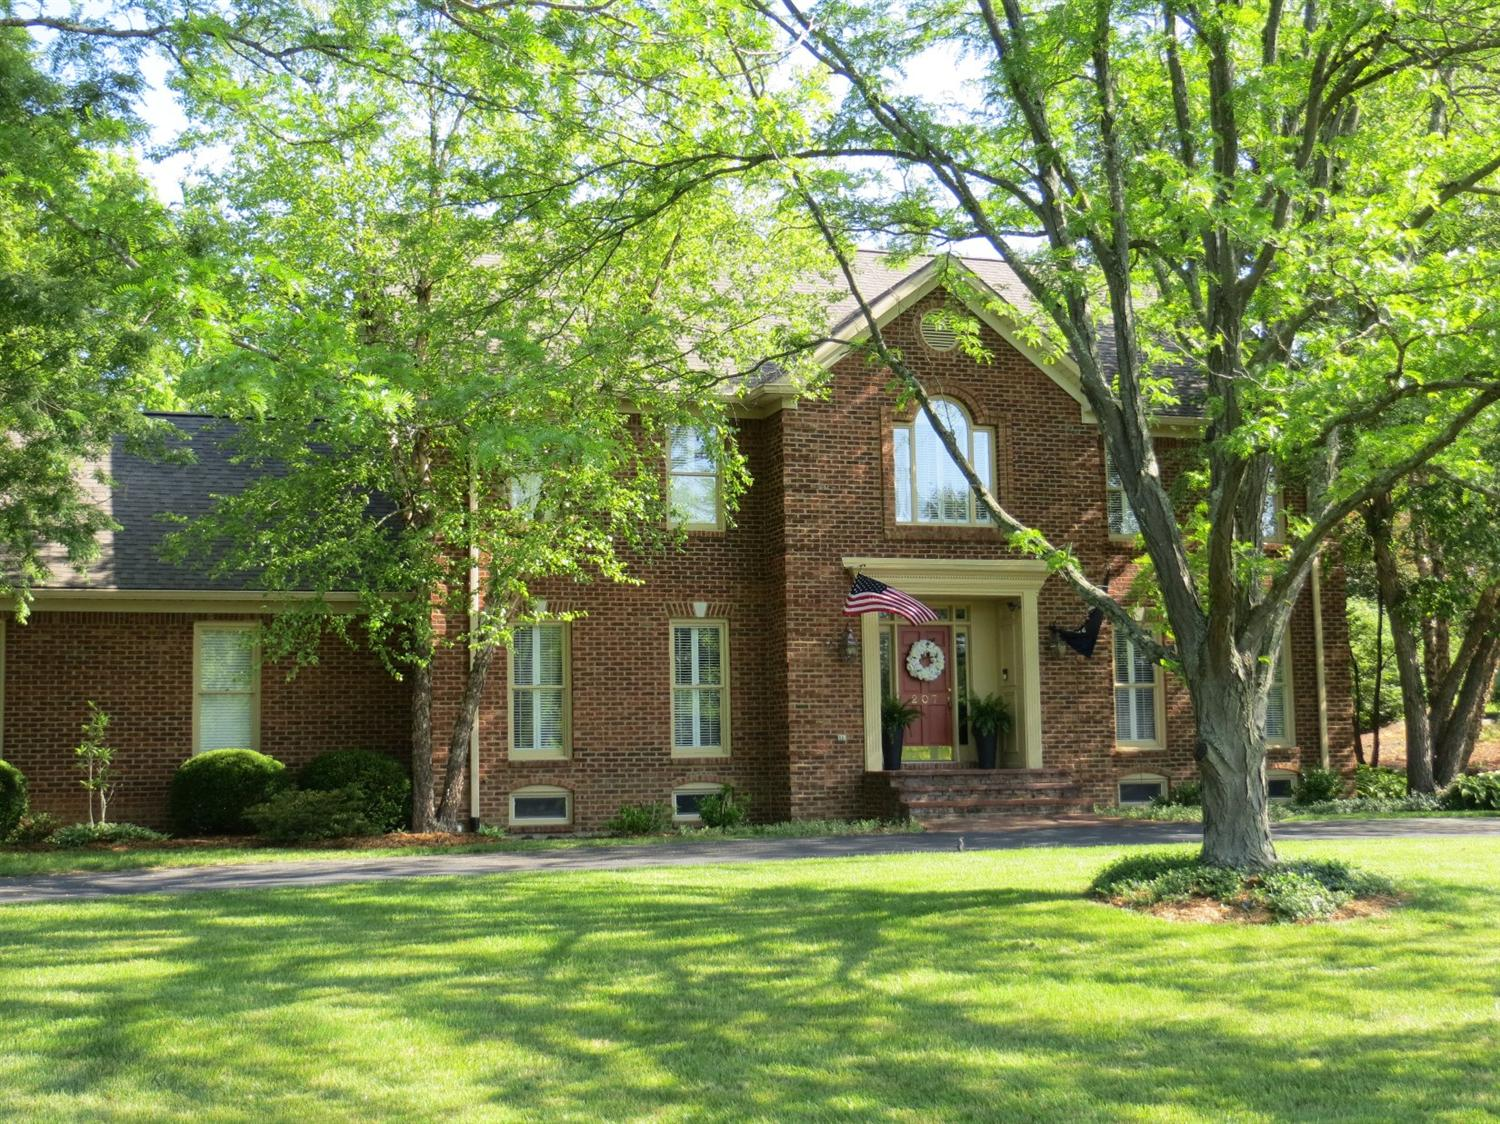 207%20Stonehedge%20Dr,%20Frankfort,%20KY%2040601